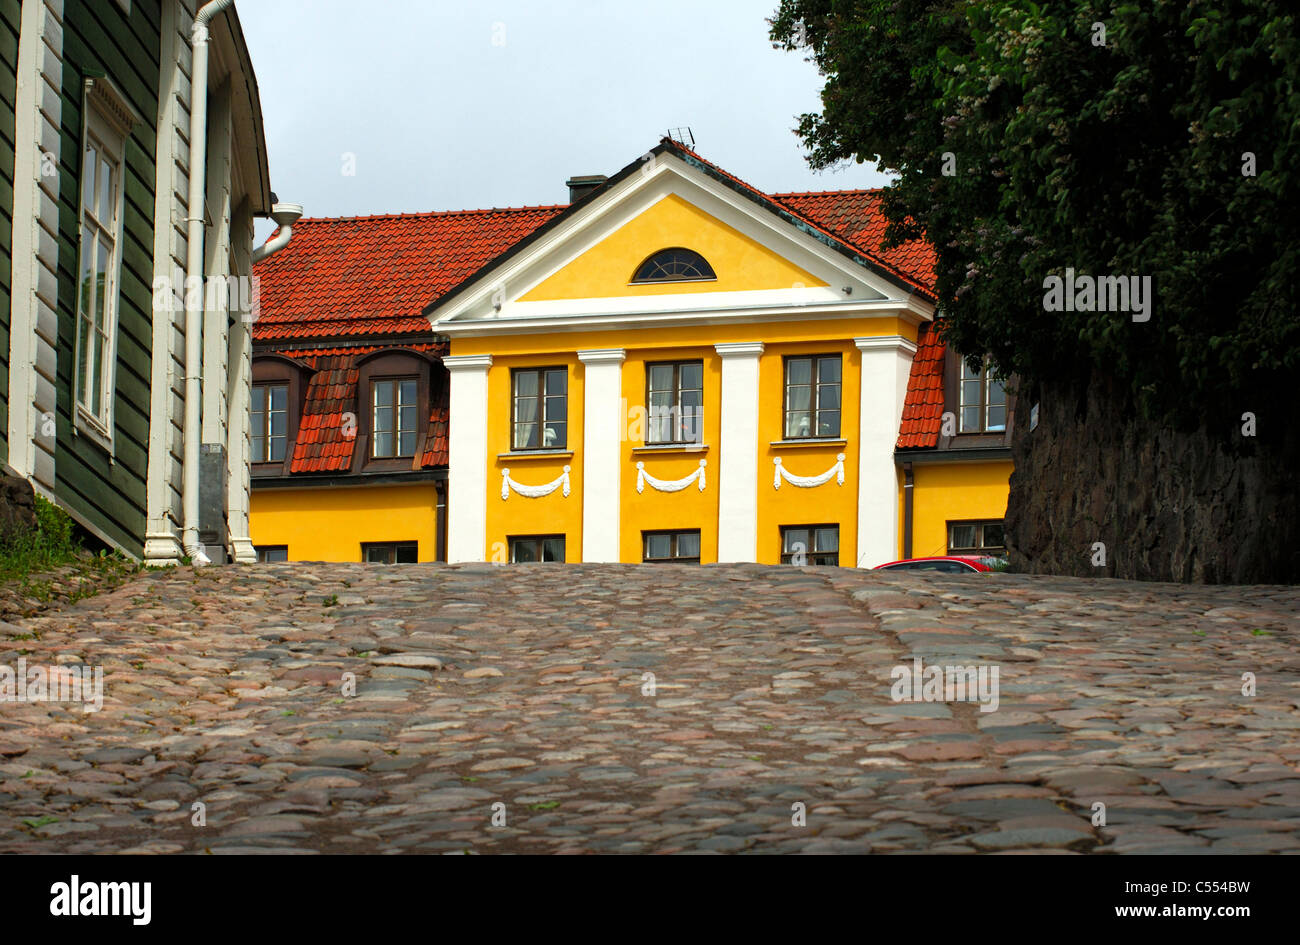 Bishop's seat of Finland's Swedish-speaking diocese in the old town of Porvoo, Finland - Stock Image